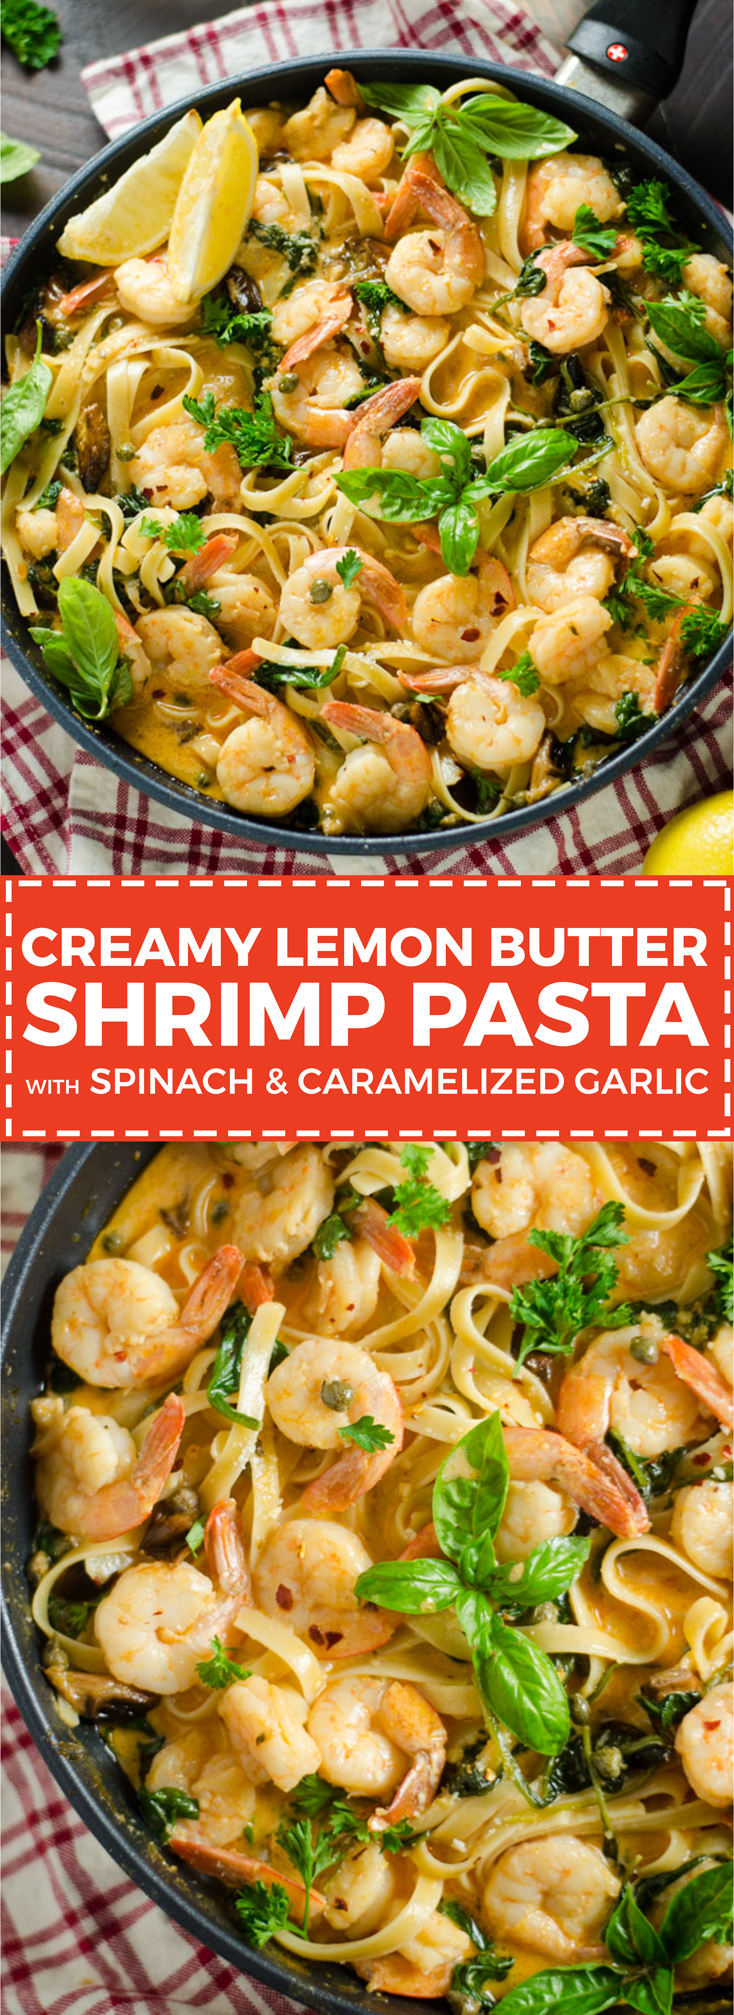 Creamy lemon butter shrimp pasta with spinach and caramelized garlic creamy lemon butter shrimp pasta with spinach and caramelized garlic this dinner recipe dials the forumfinder Gallery